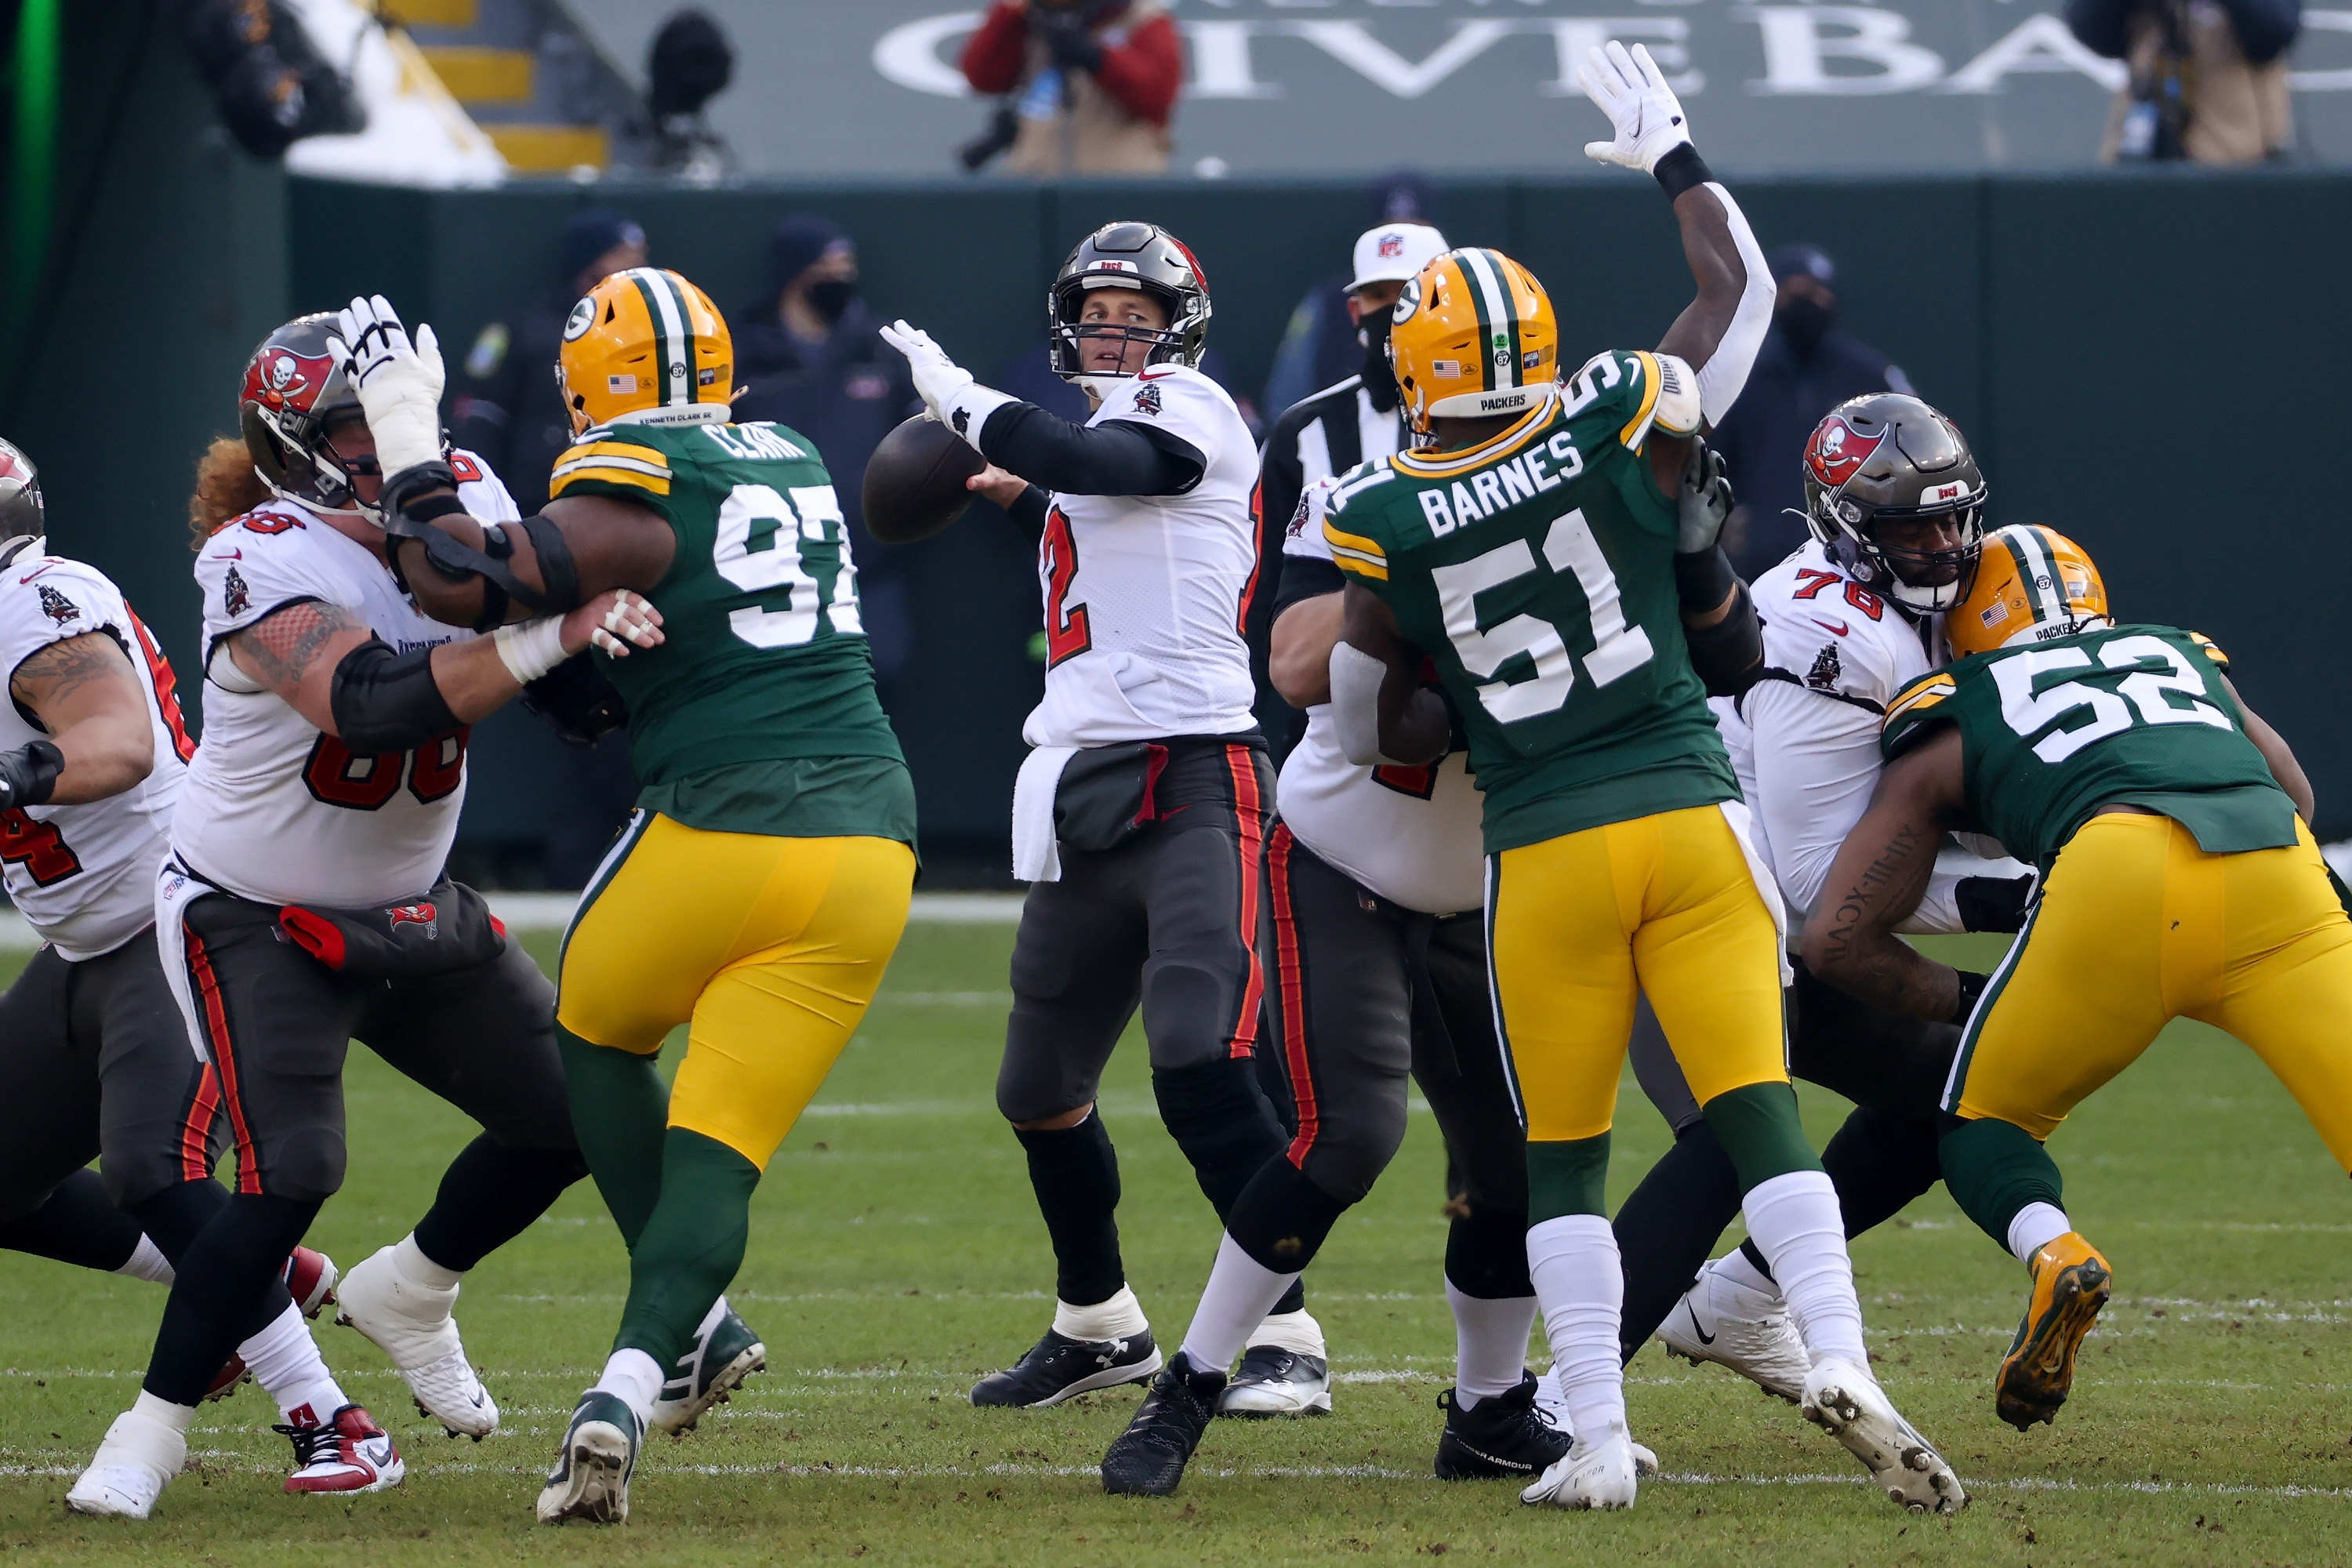 It wasn't just on the field where the Tampa Bay Buccaneers defeated the Green Bay Packers.